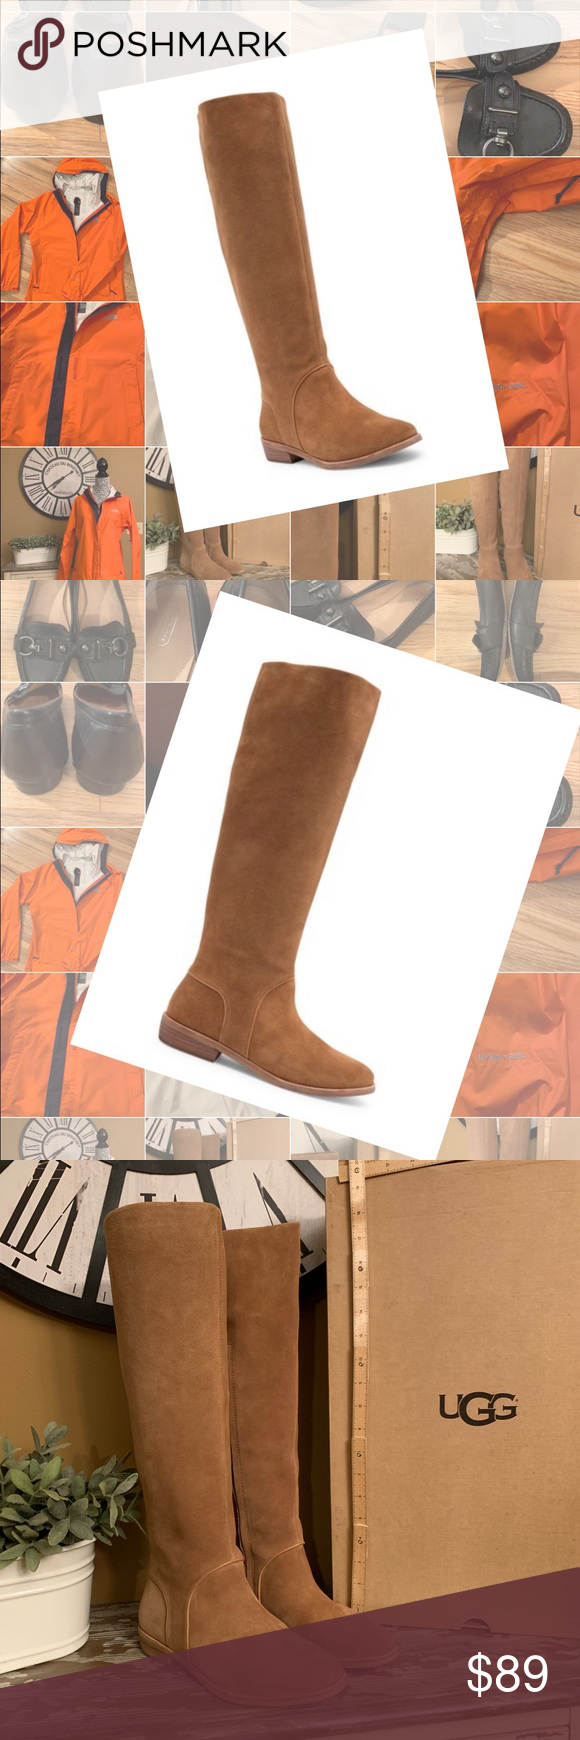 f57670fb0c3 UGG Daley Tall Boot in Classic Chestnut. SZ 6 NWT NWT UGG tall boots ...